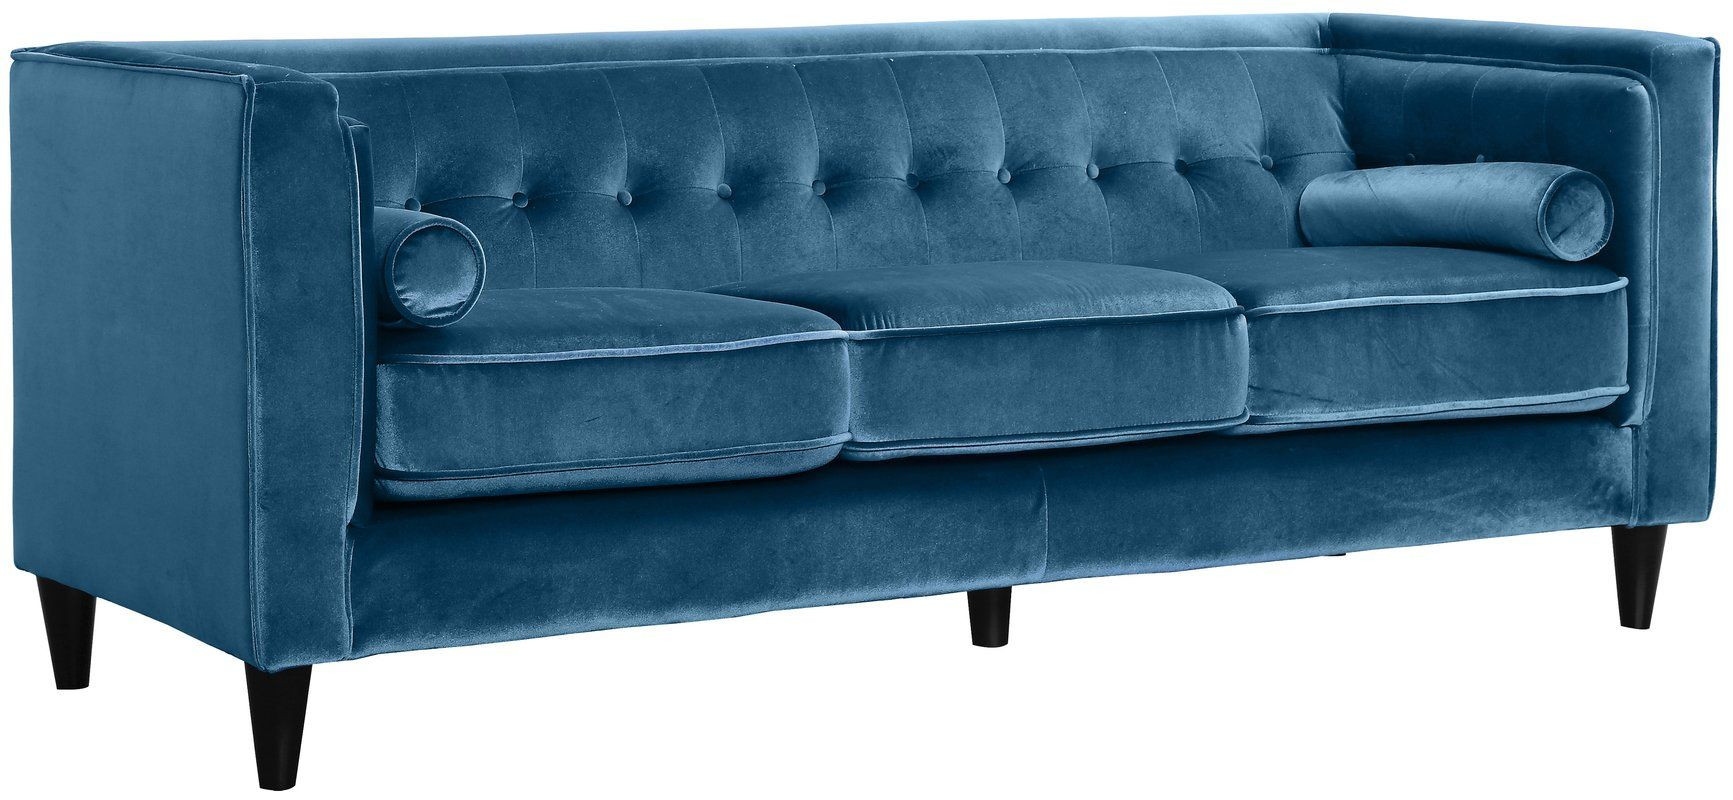 Strange Roberta Velvet Chesterfield Sofa Furniture Sofa Machost Co Dining Chair Design Ideas Machostcouk